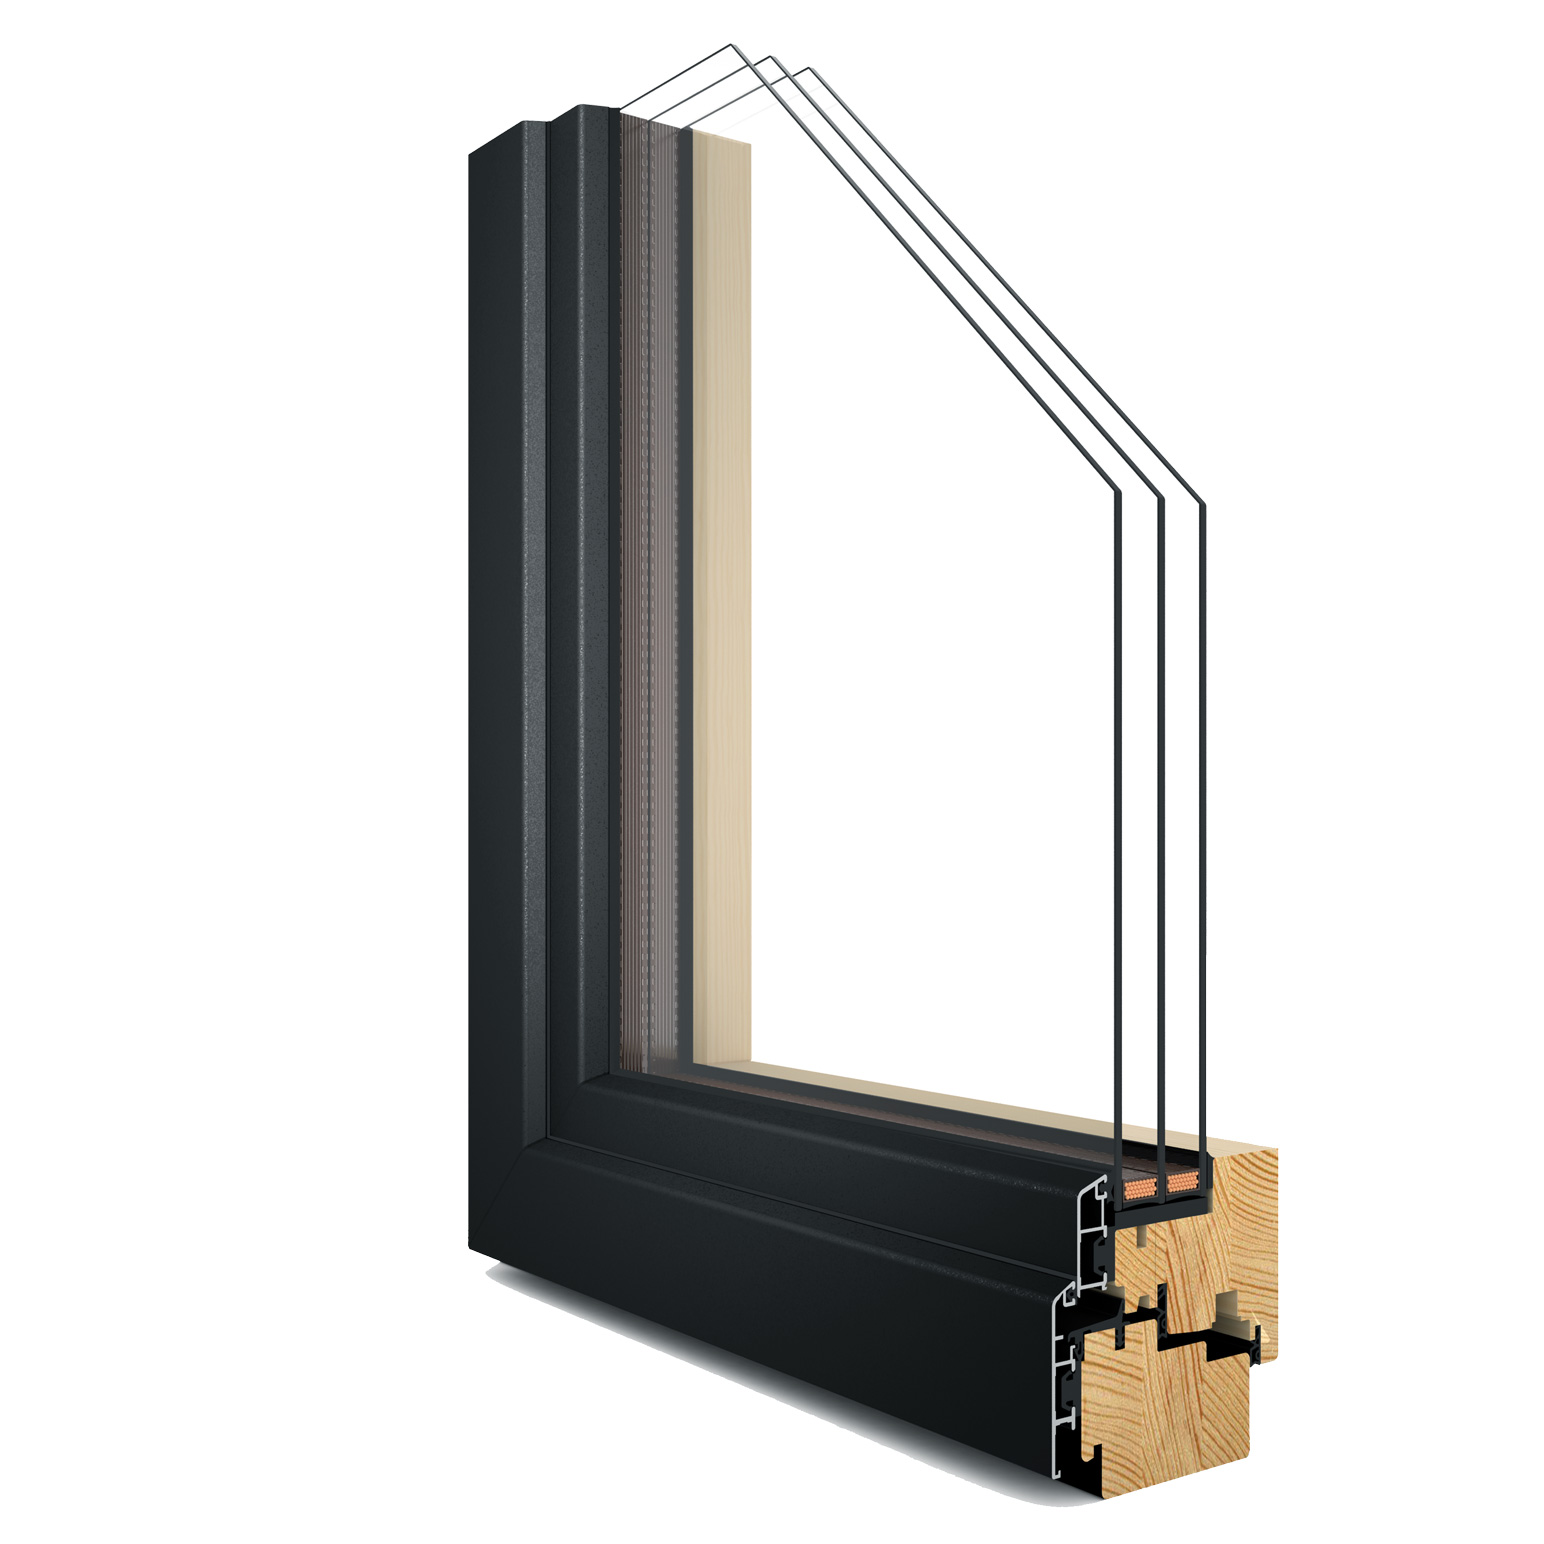 R-7 Zola Thermo Clad™ window rendering